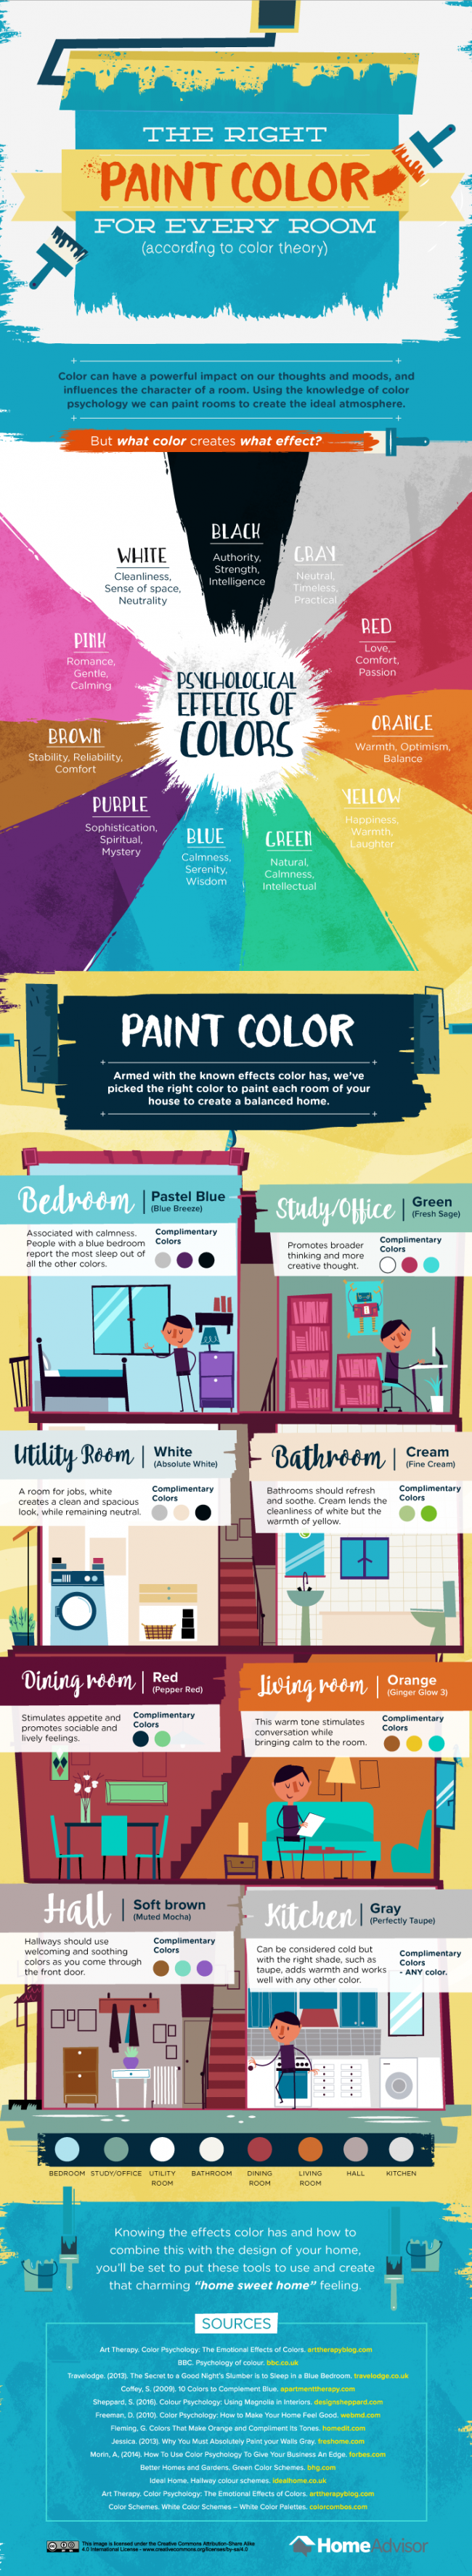 choosing room paint colors painting tips from homeadvisor